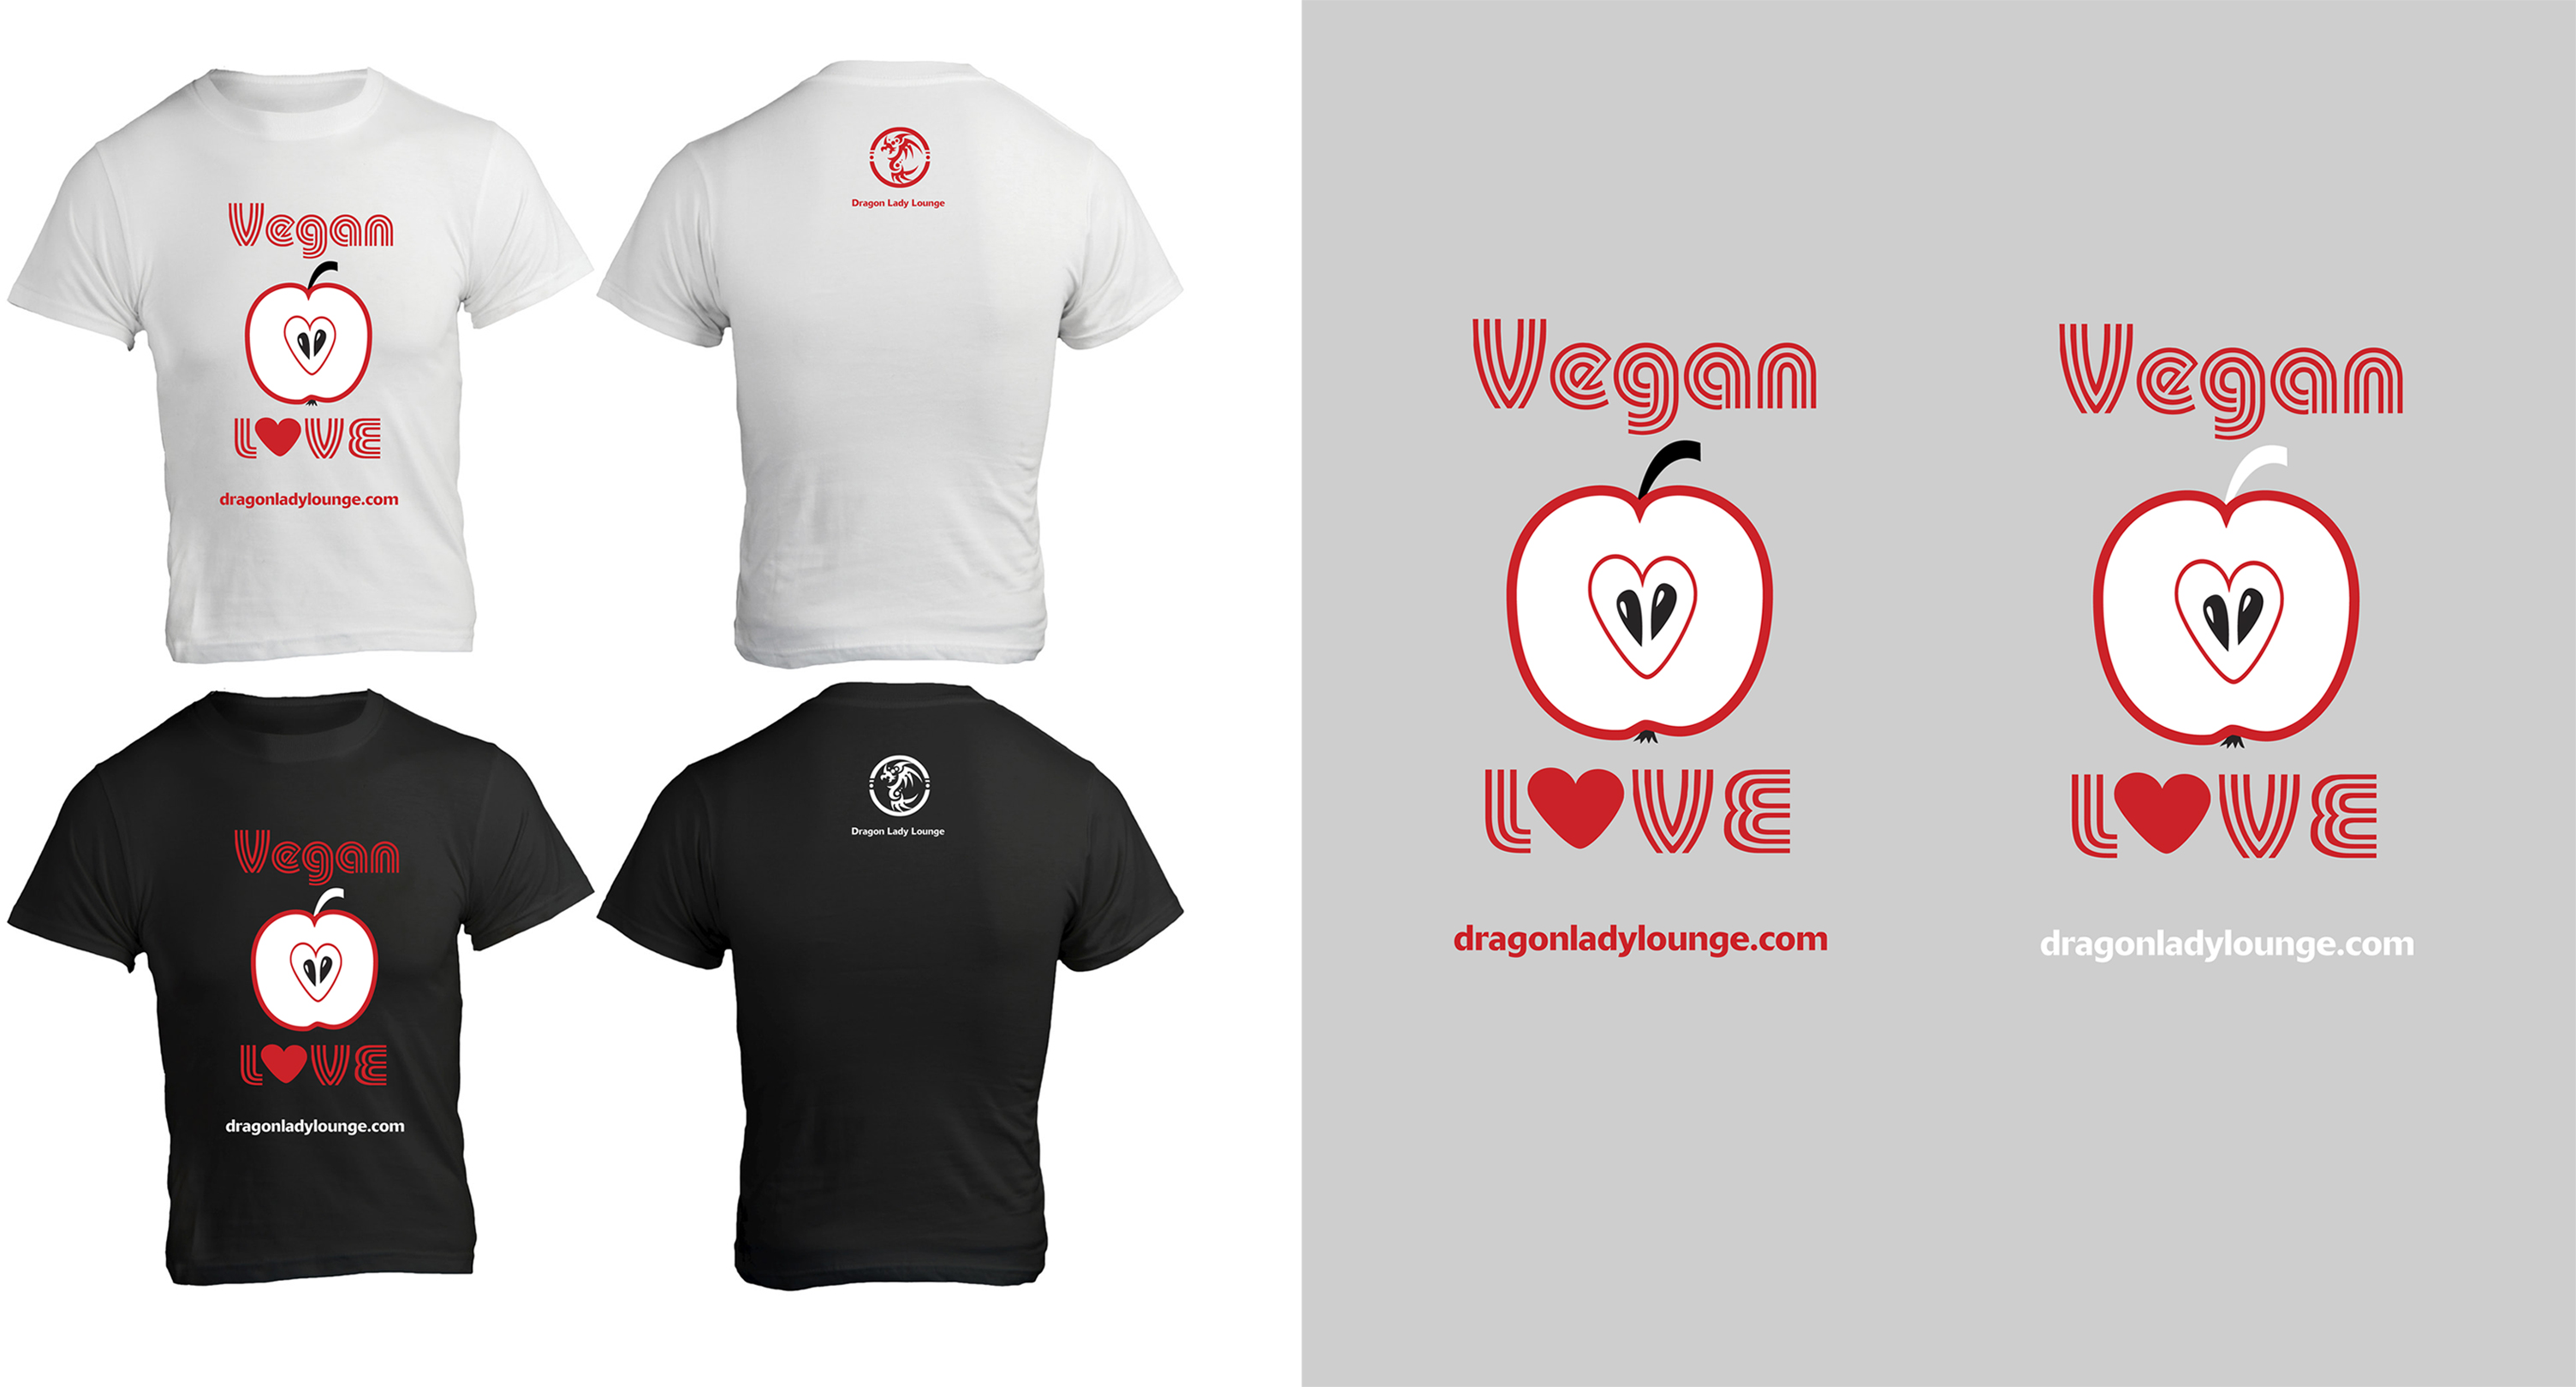 Vegan Love Shirt